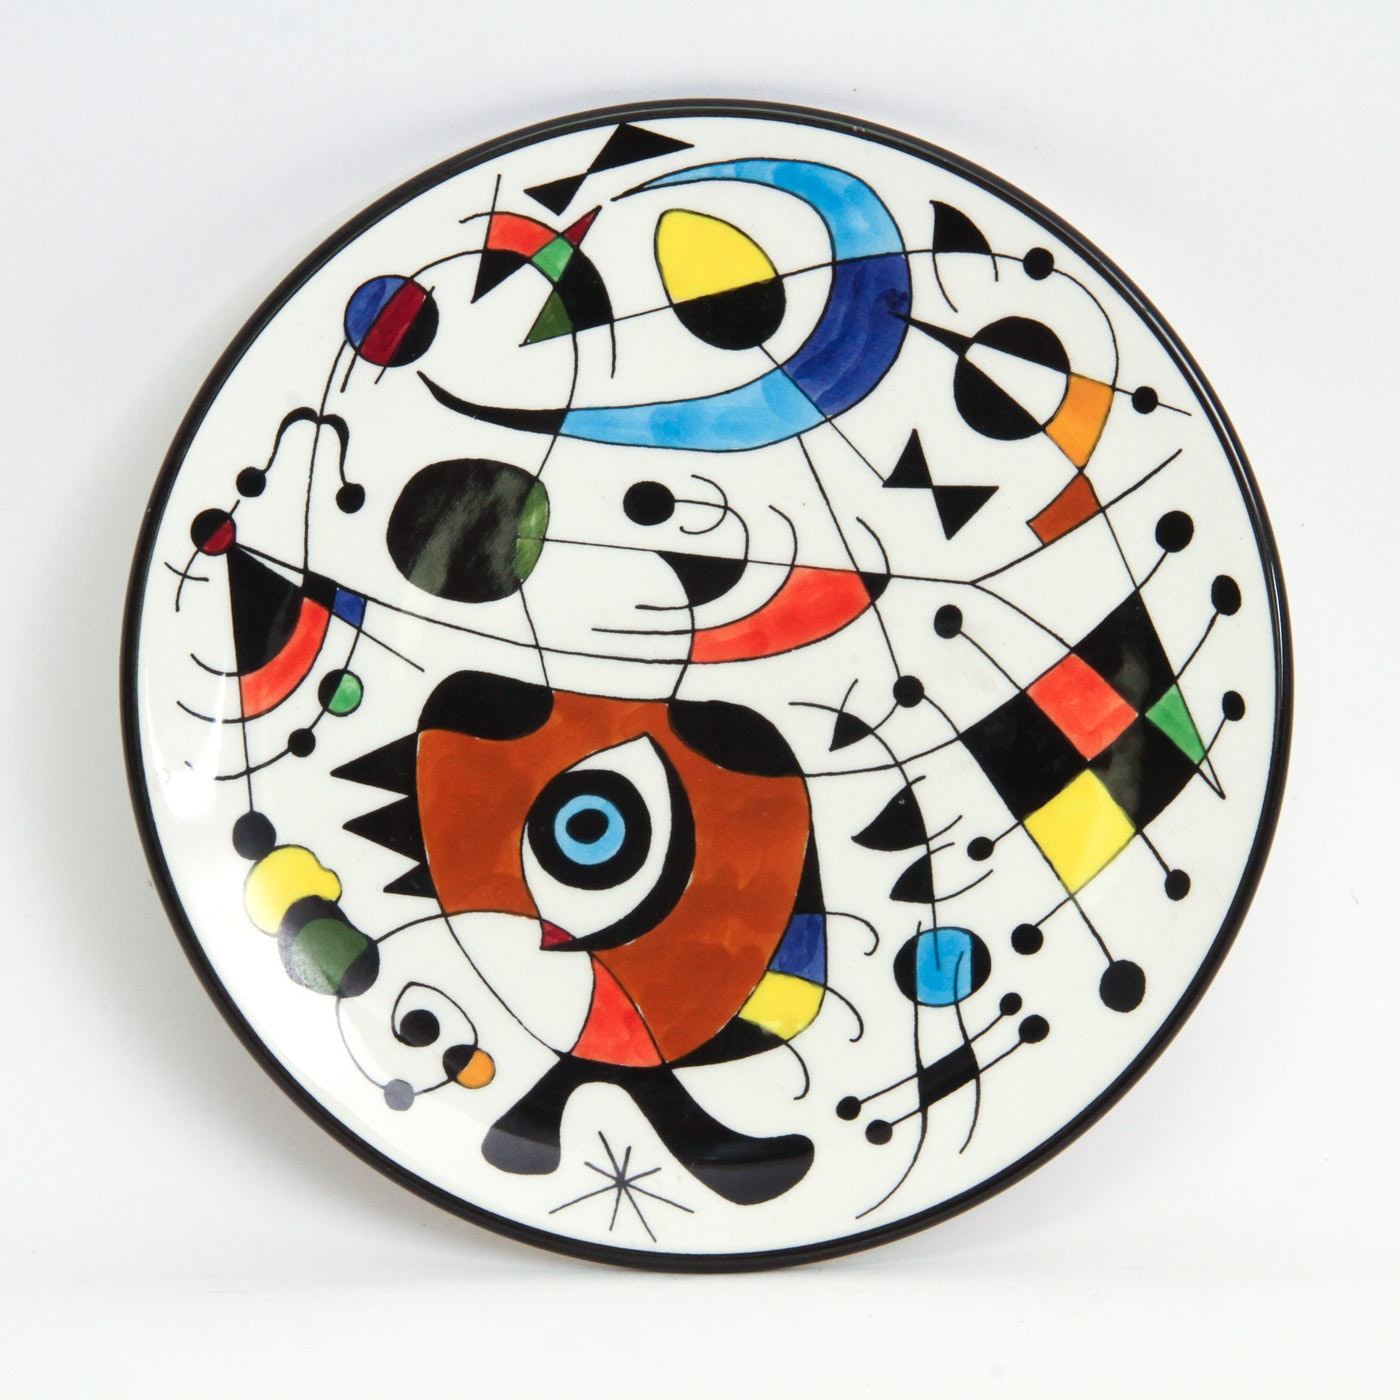 After Joan Miró Hand-Painted Ceramic Plate